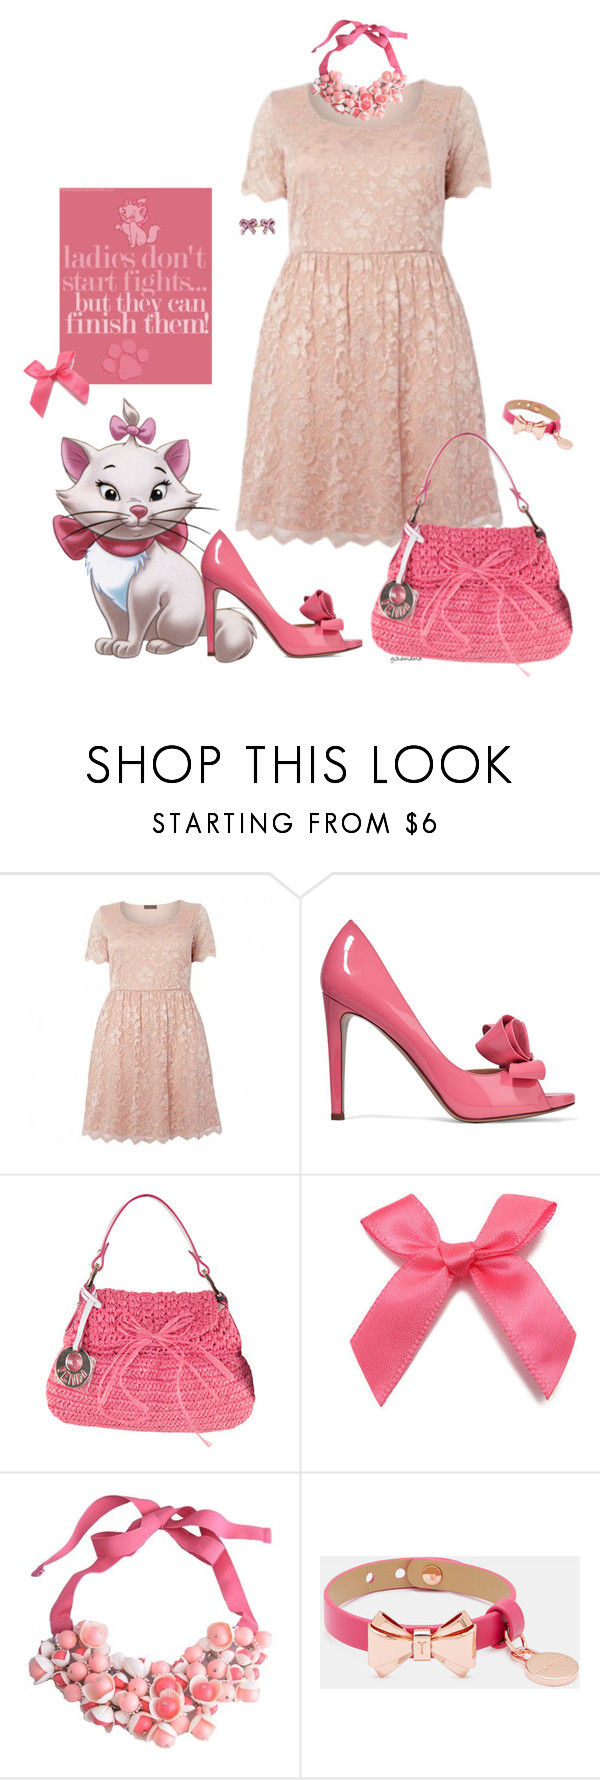 """""Because I'm a lady, that's why!""- plus size"" by gchamama ❤ liked on Polyvore featuring Disney, Valentino, Fendi, P.A.R.O.S.H., Ted Baker and Marie"